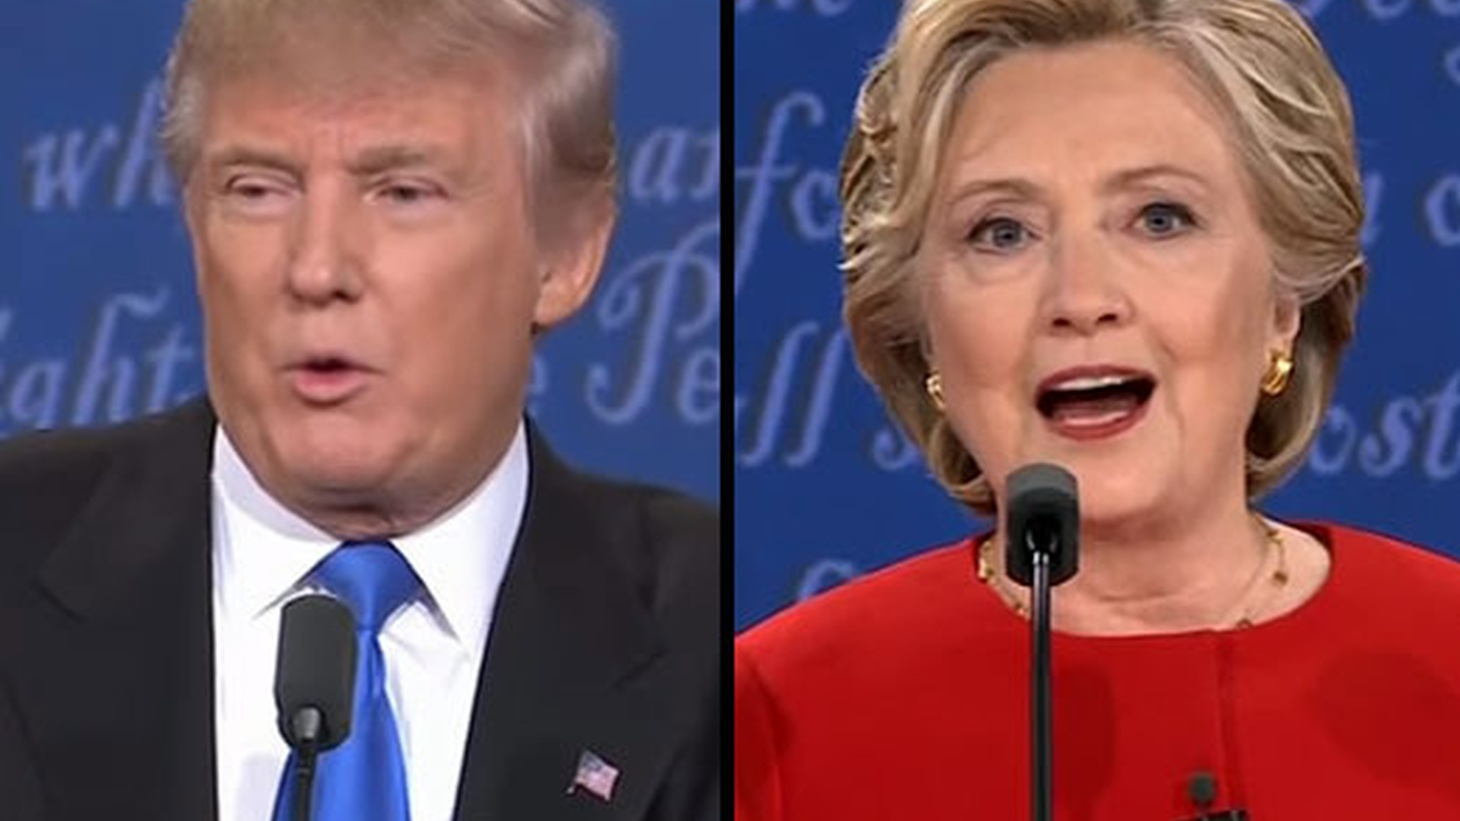 All Things Considered host Robert Siegel anchors NPR's coverage of the second presidential debate which airs Sunday, October 9 from 6-8pm PDT. ABC's Martha Raddatz and CNN's Anderson Cooper moderate the debate, which will take the form of a town meeting.